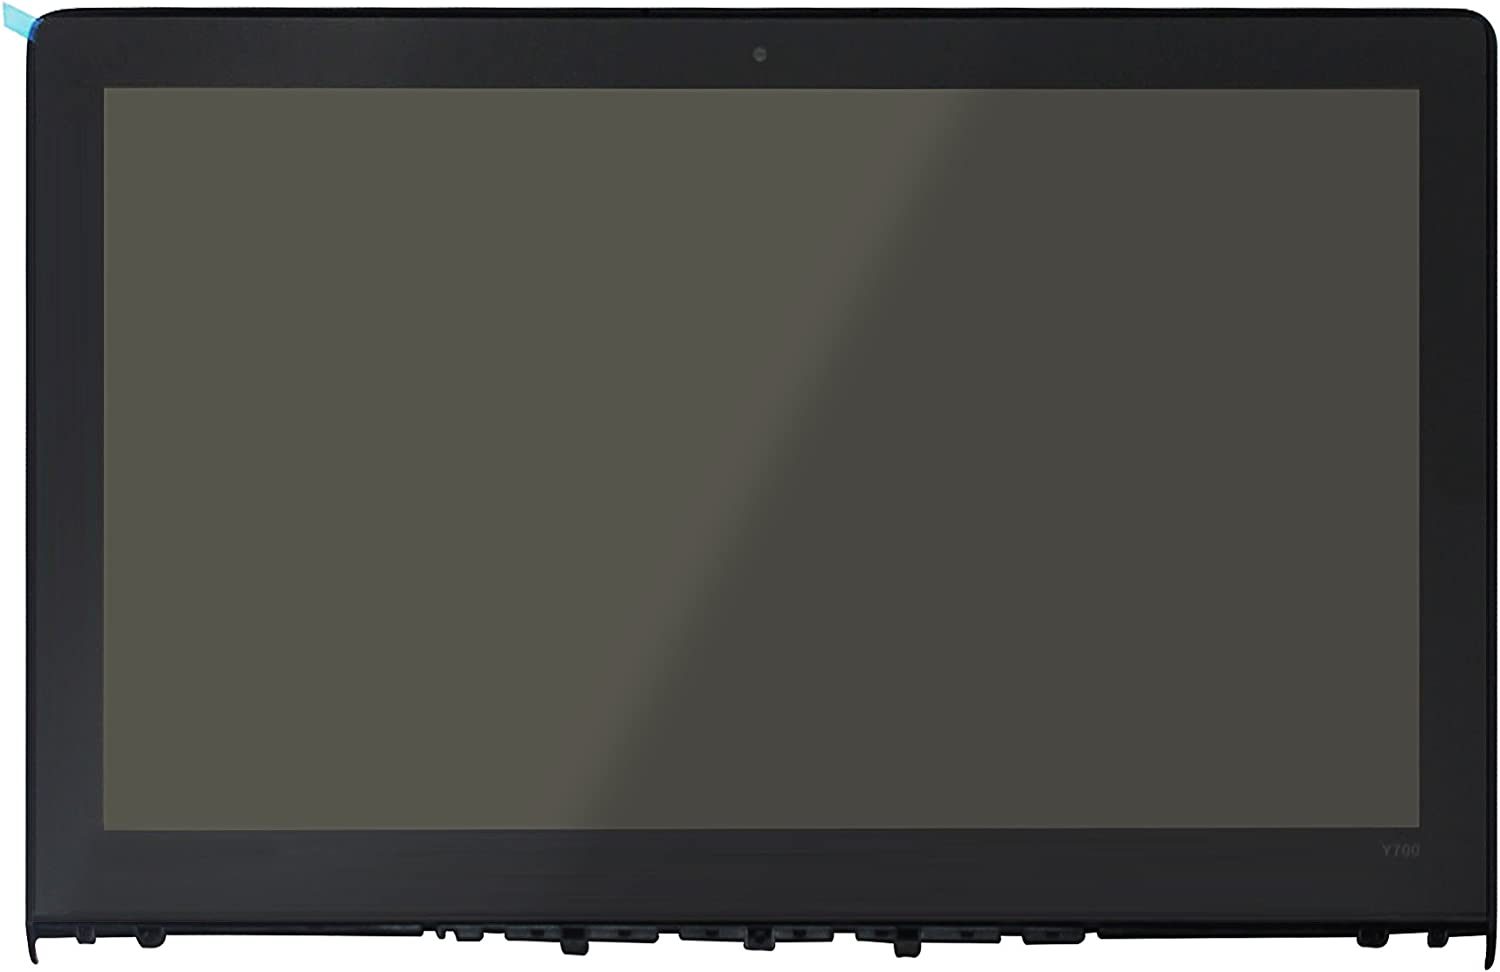 LCDOLED Replacement 15.6 inches FullHD 1080P IPS LED LCD Screen Front Glass Assembly with Bezel for Lenovo Ideapad Y700-15ISK 80NV Non-Touch (1920x1080 Resolution)